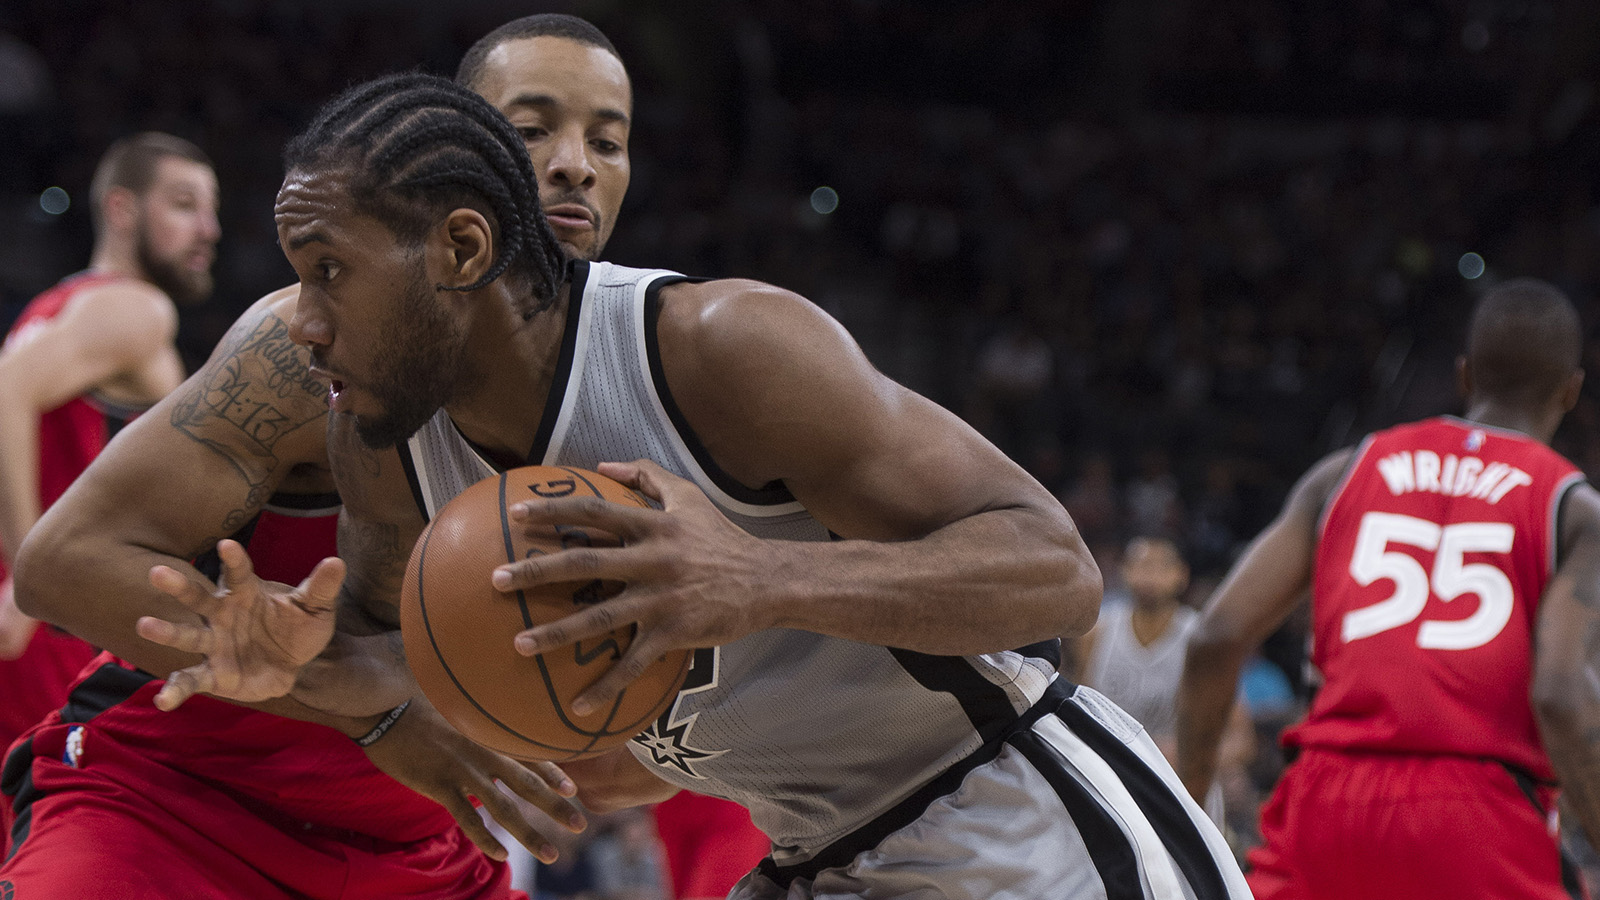 Spurs get franchise-record 64th win, improve to 39-0 at home